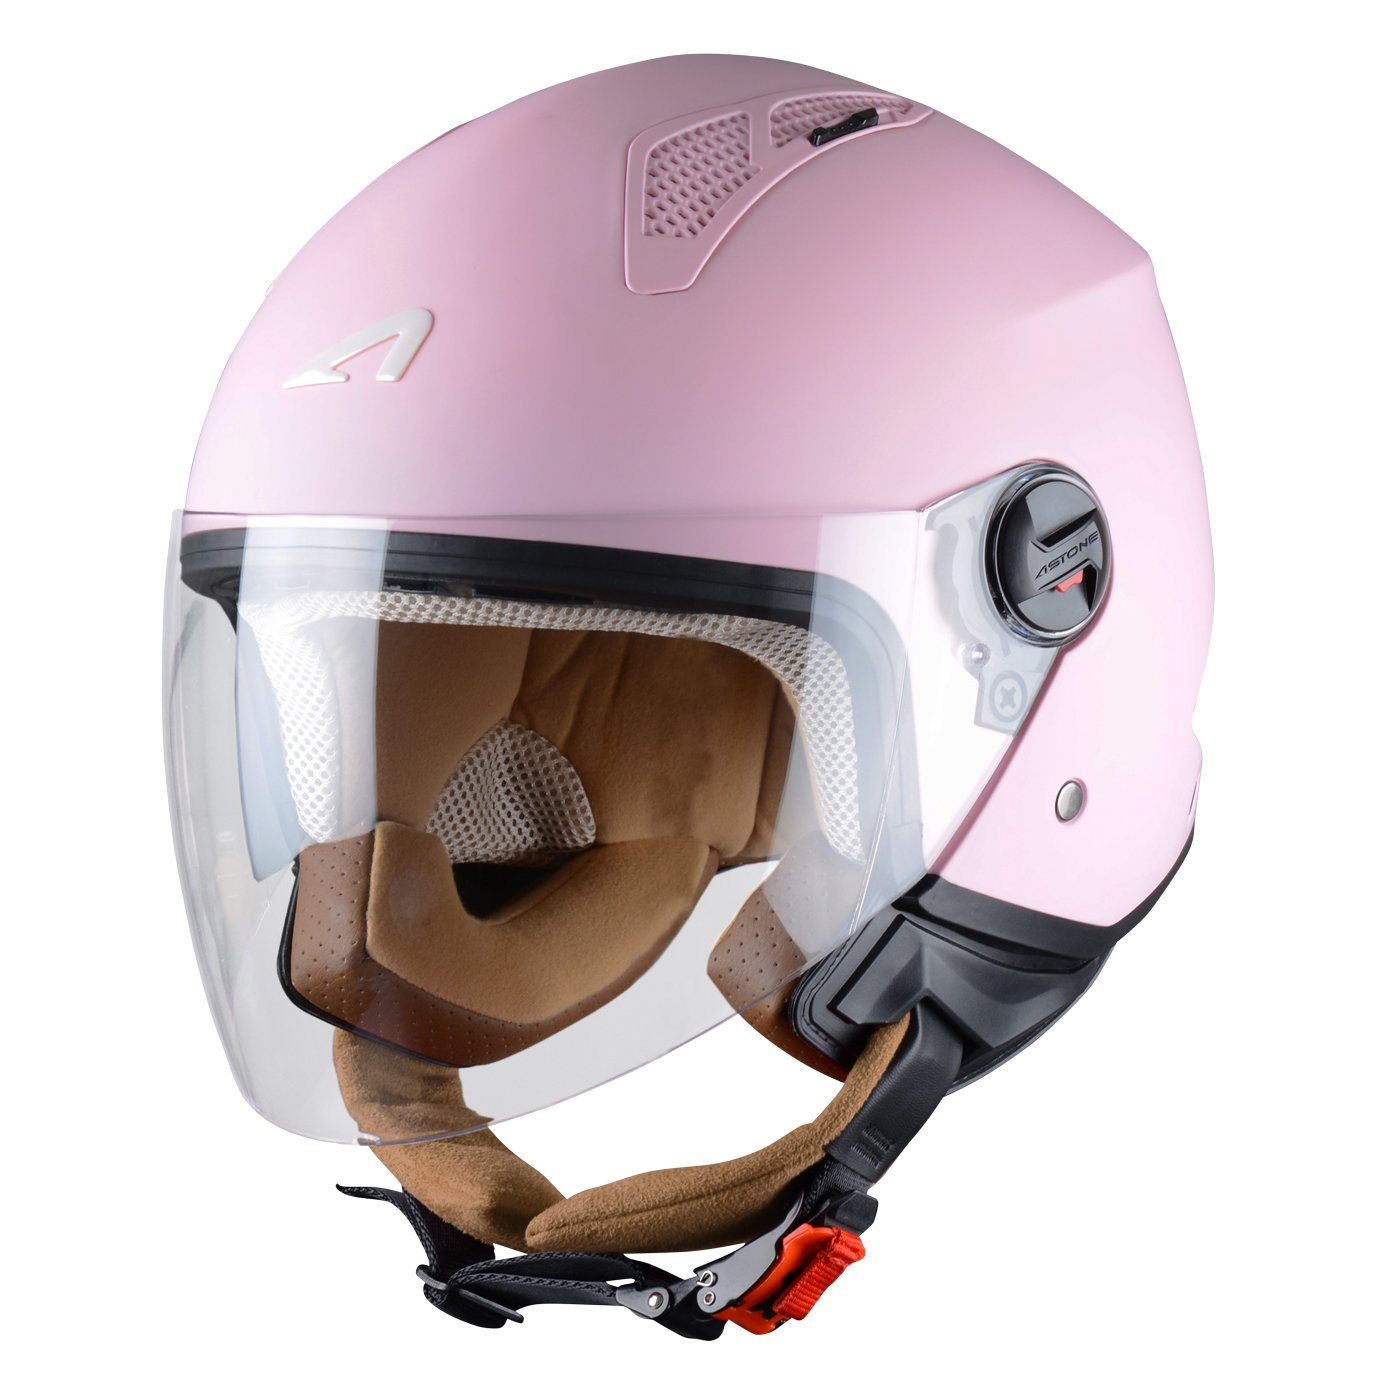 Astone Helmets Mini Jet Army Casco Jet, color Rosa Claro, talla XS product image